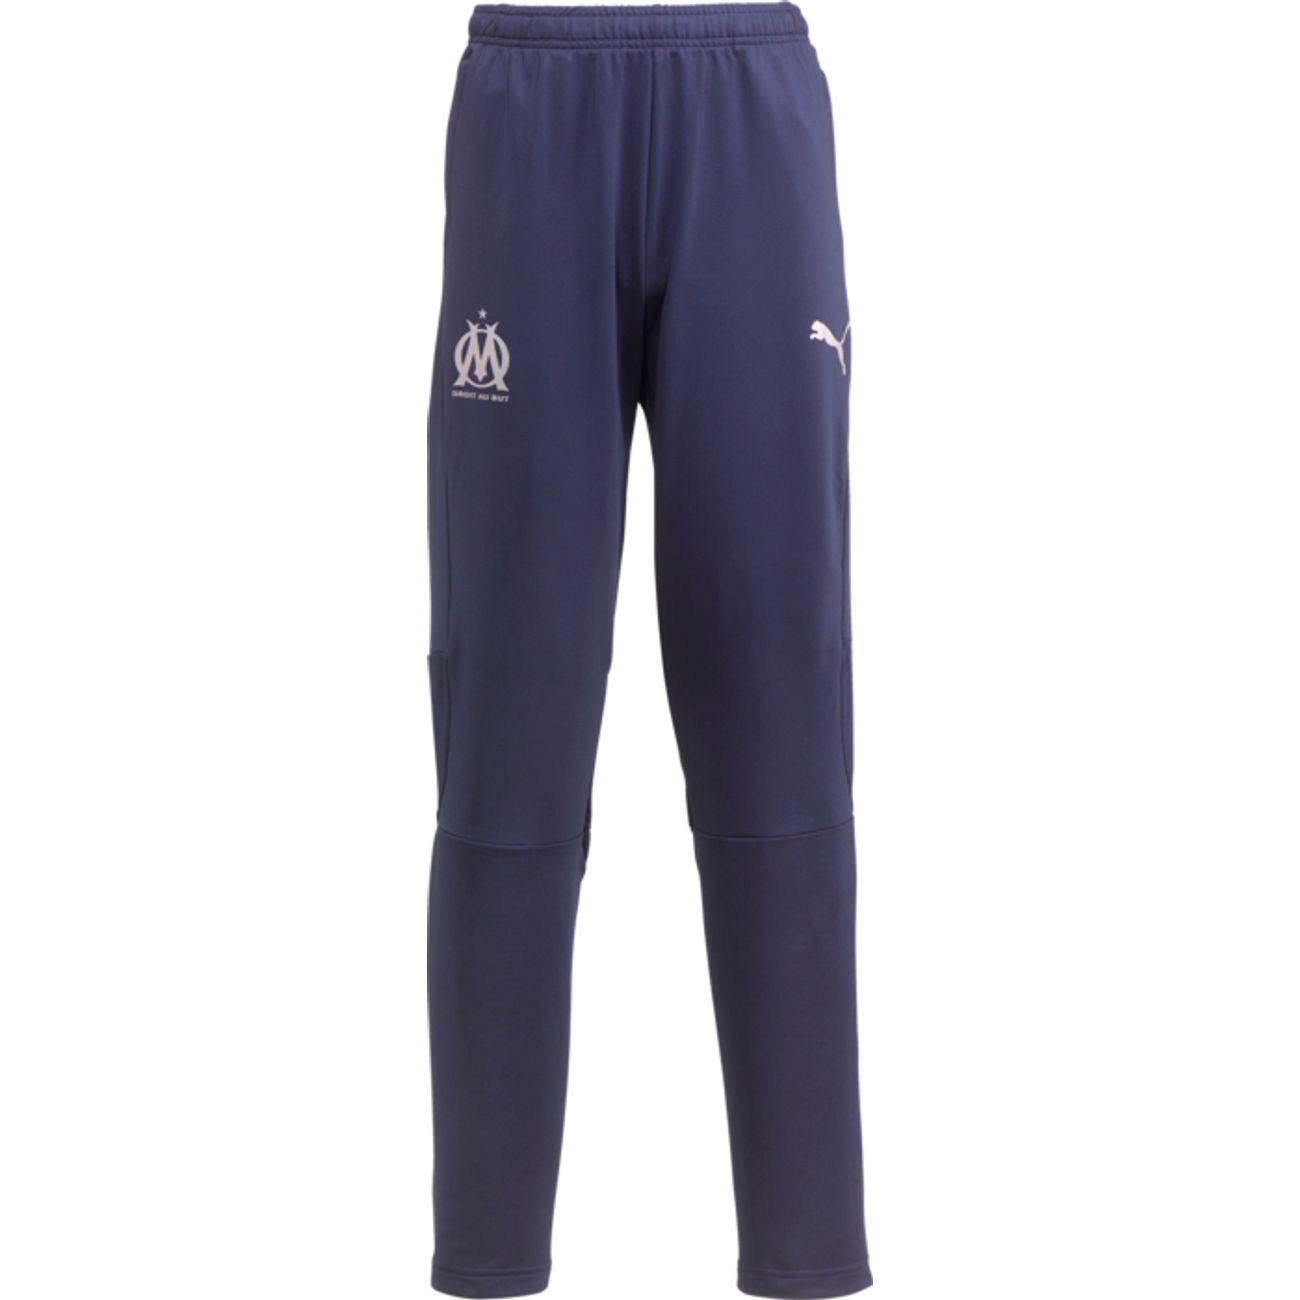 PANTALON  enfant PUMA OM TRAINING PANTS LIGA I JR 18